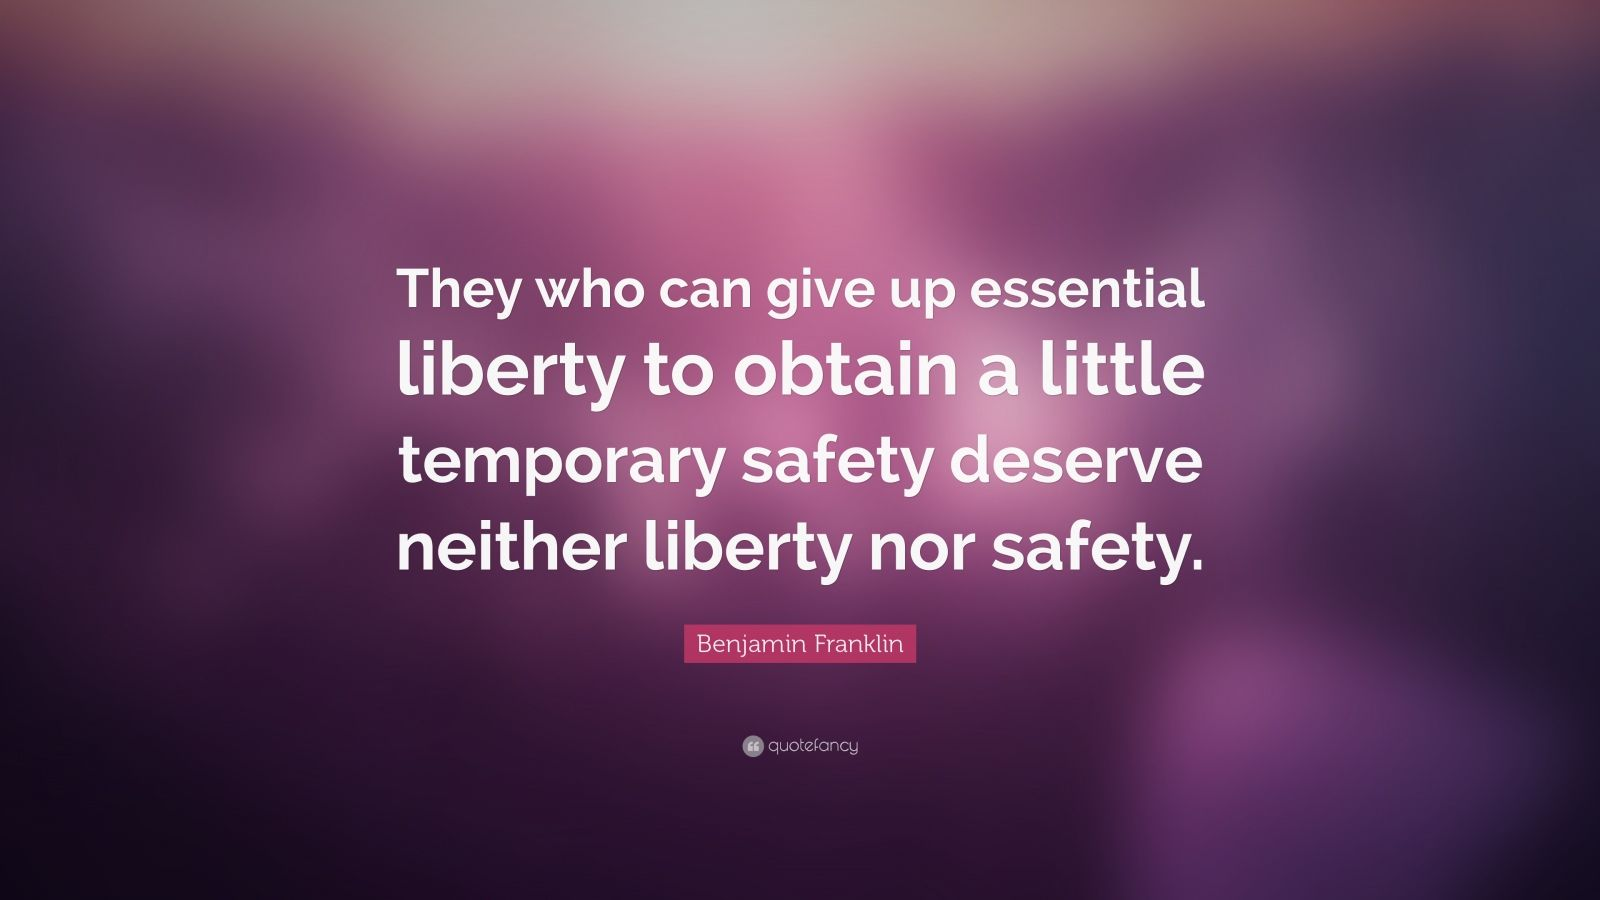 giving up essential liberty to obtain a little temporary safety Quote-they-who-can-give-up-essential-liberty-to-obtain-a-little-temporary-safety- deserve-neither-liberty-benjamin-franklin-65439jpg 850×400 pixels.